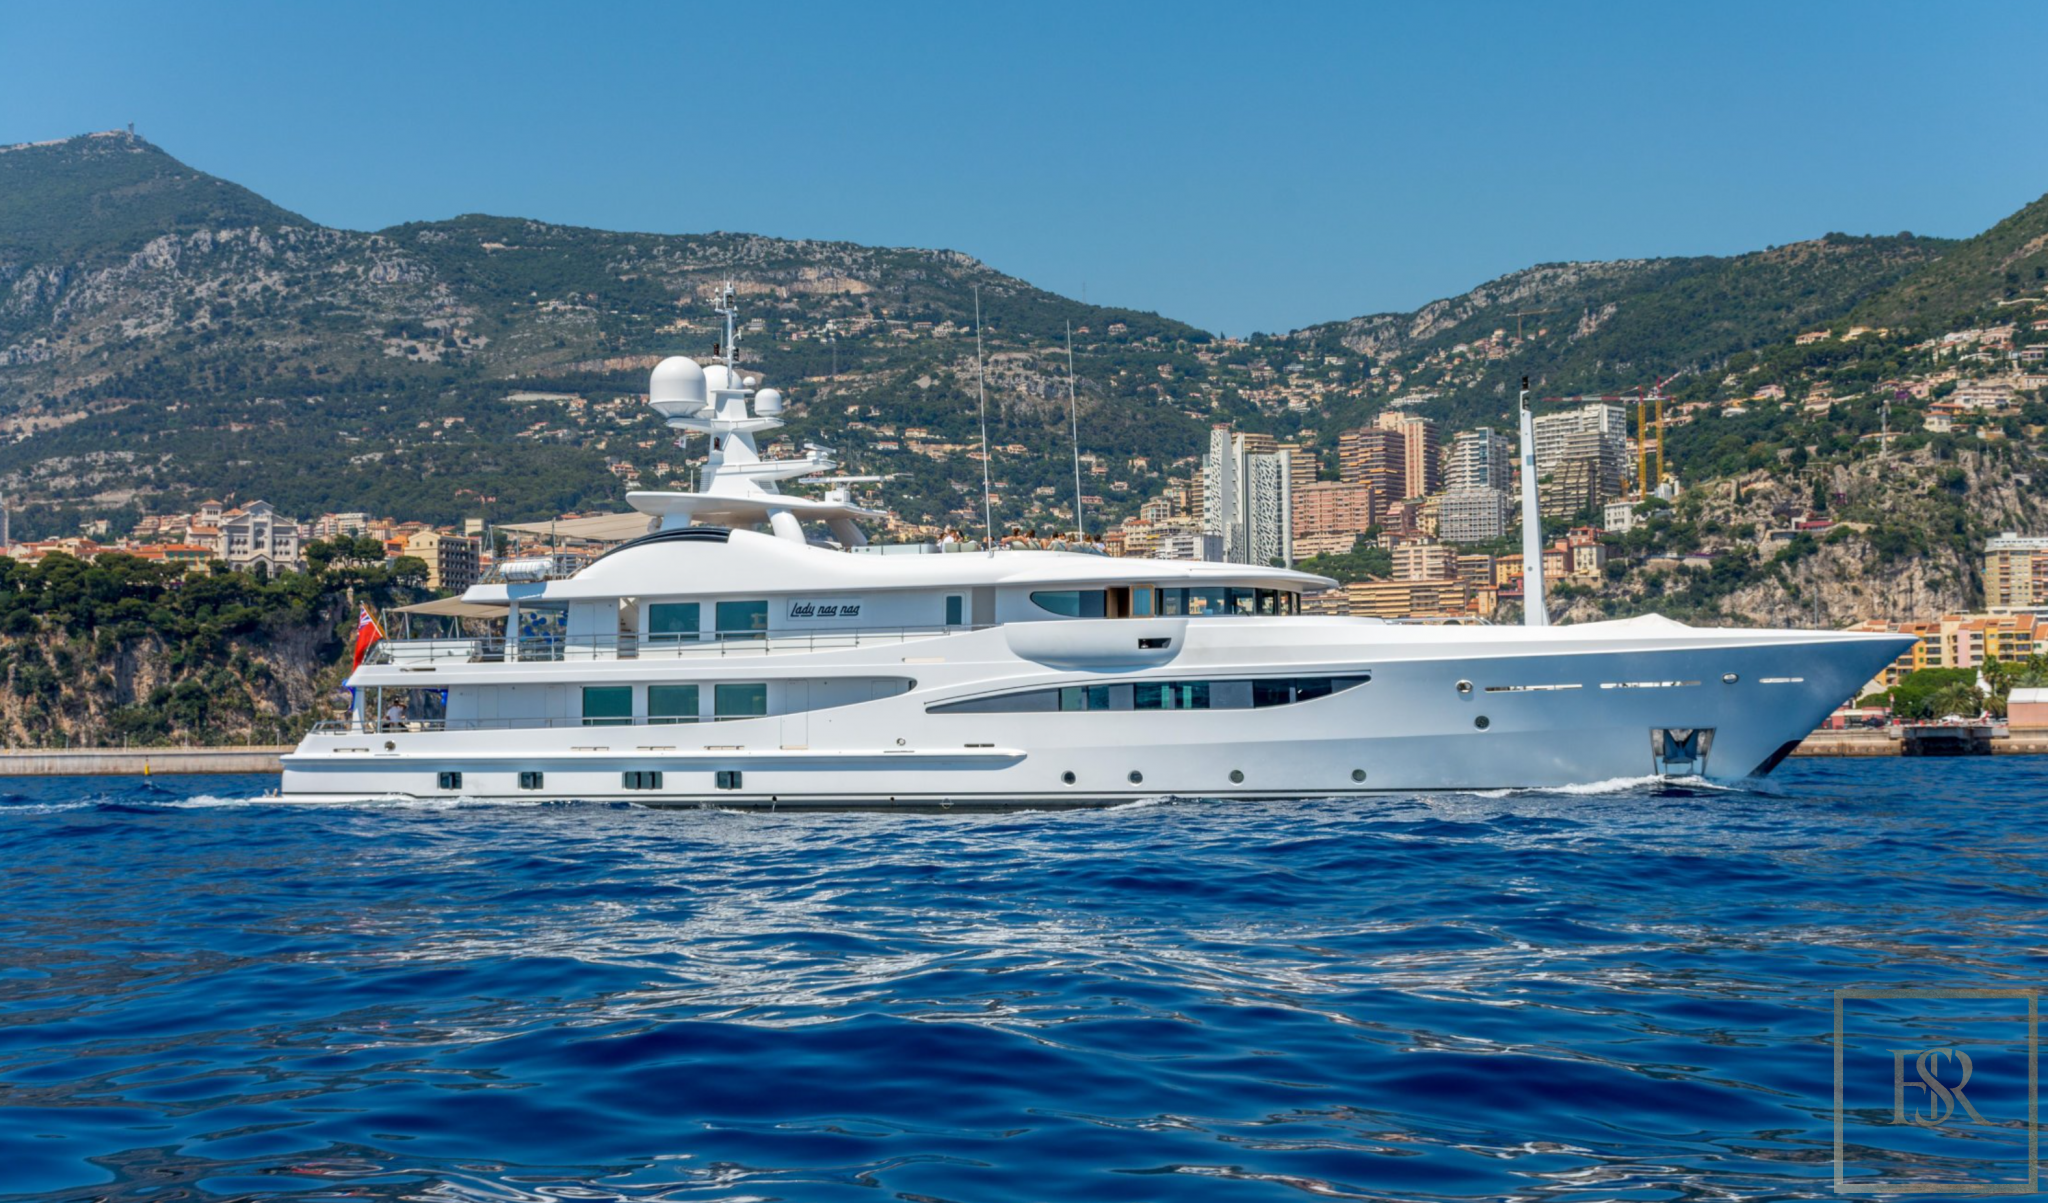 Ultra luxury Superyachts 50 meters, megayacht 80 meters, most expenvise giga yacht 100 meters super yacht for sale for super rich